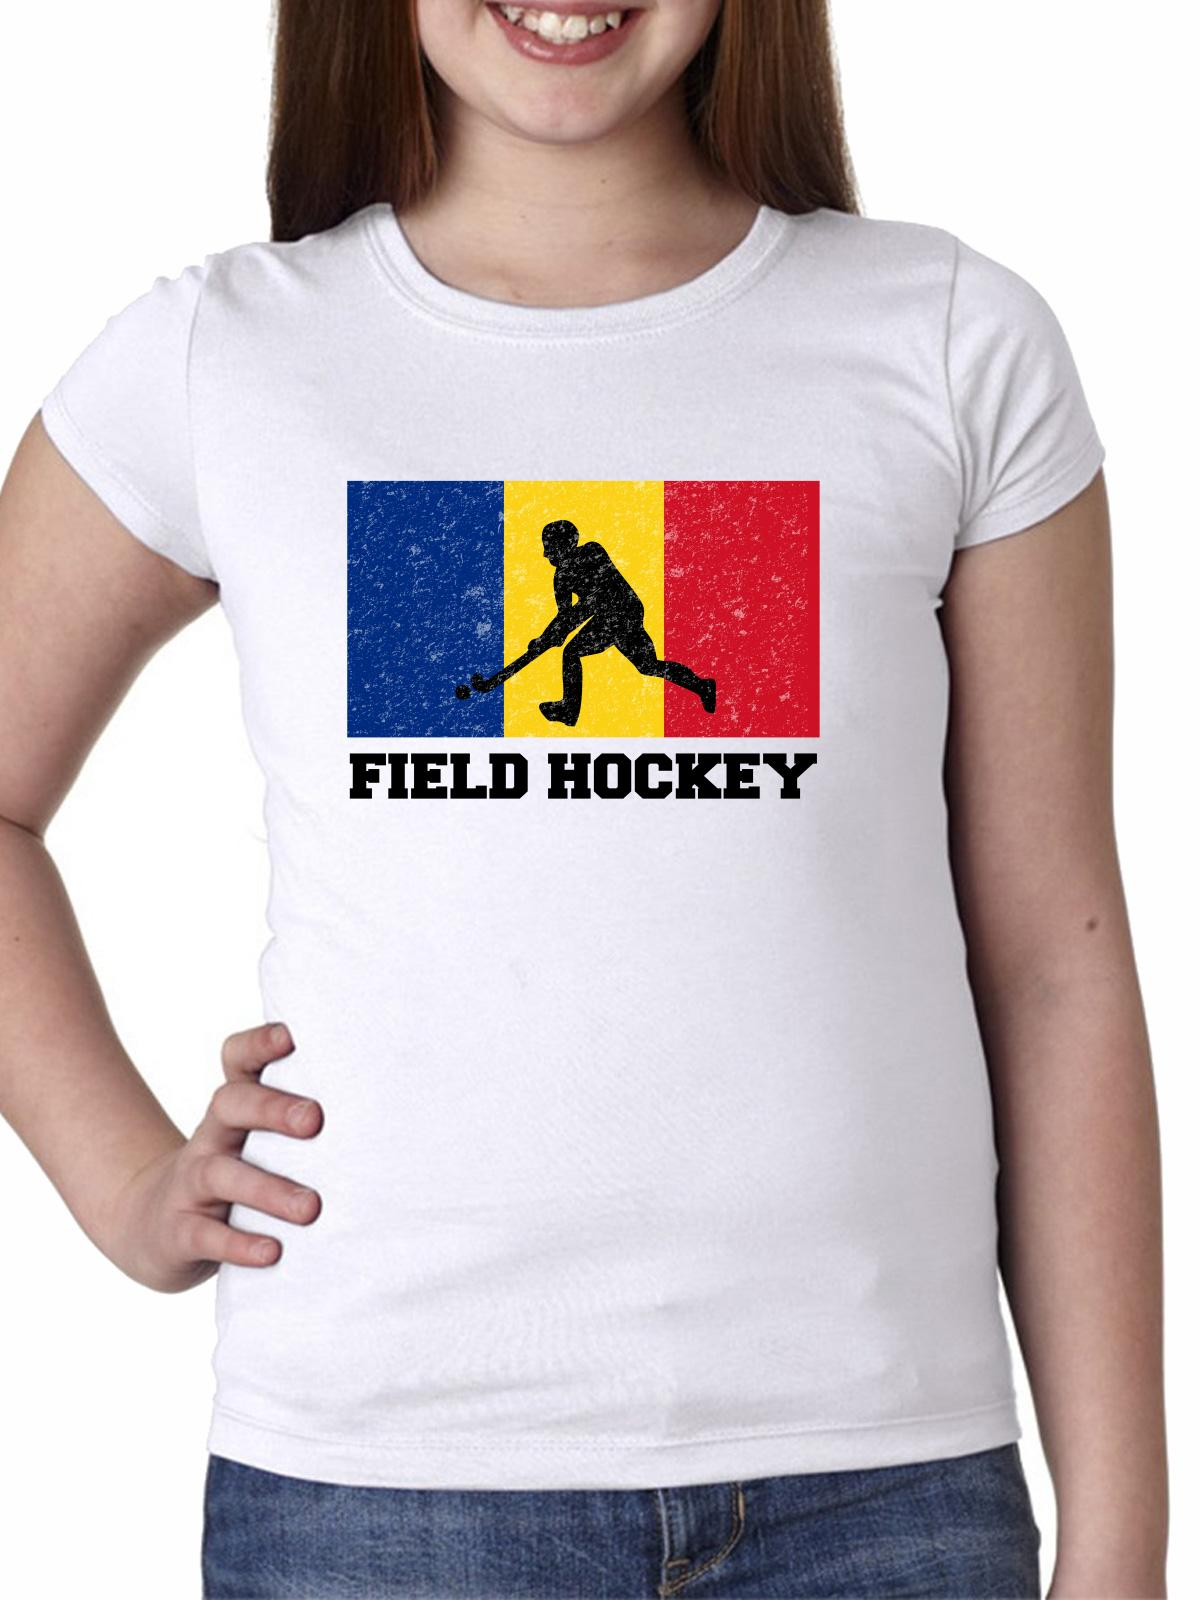 Romania Olympic Field Hockey Flag Silhouette Girl's Cotton Youth T-Shirt by Hollywood Thread